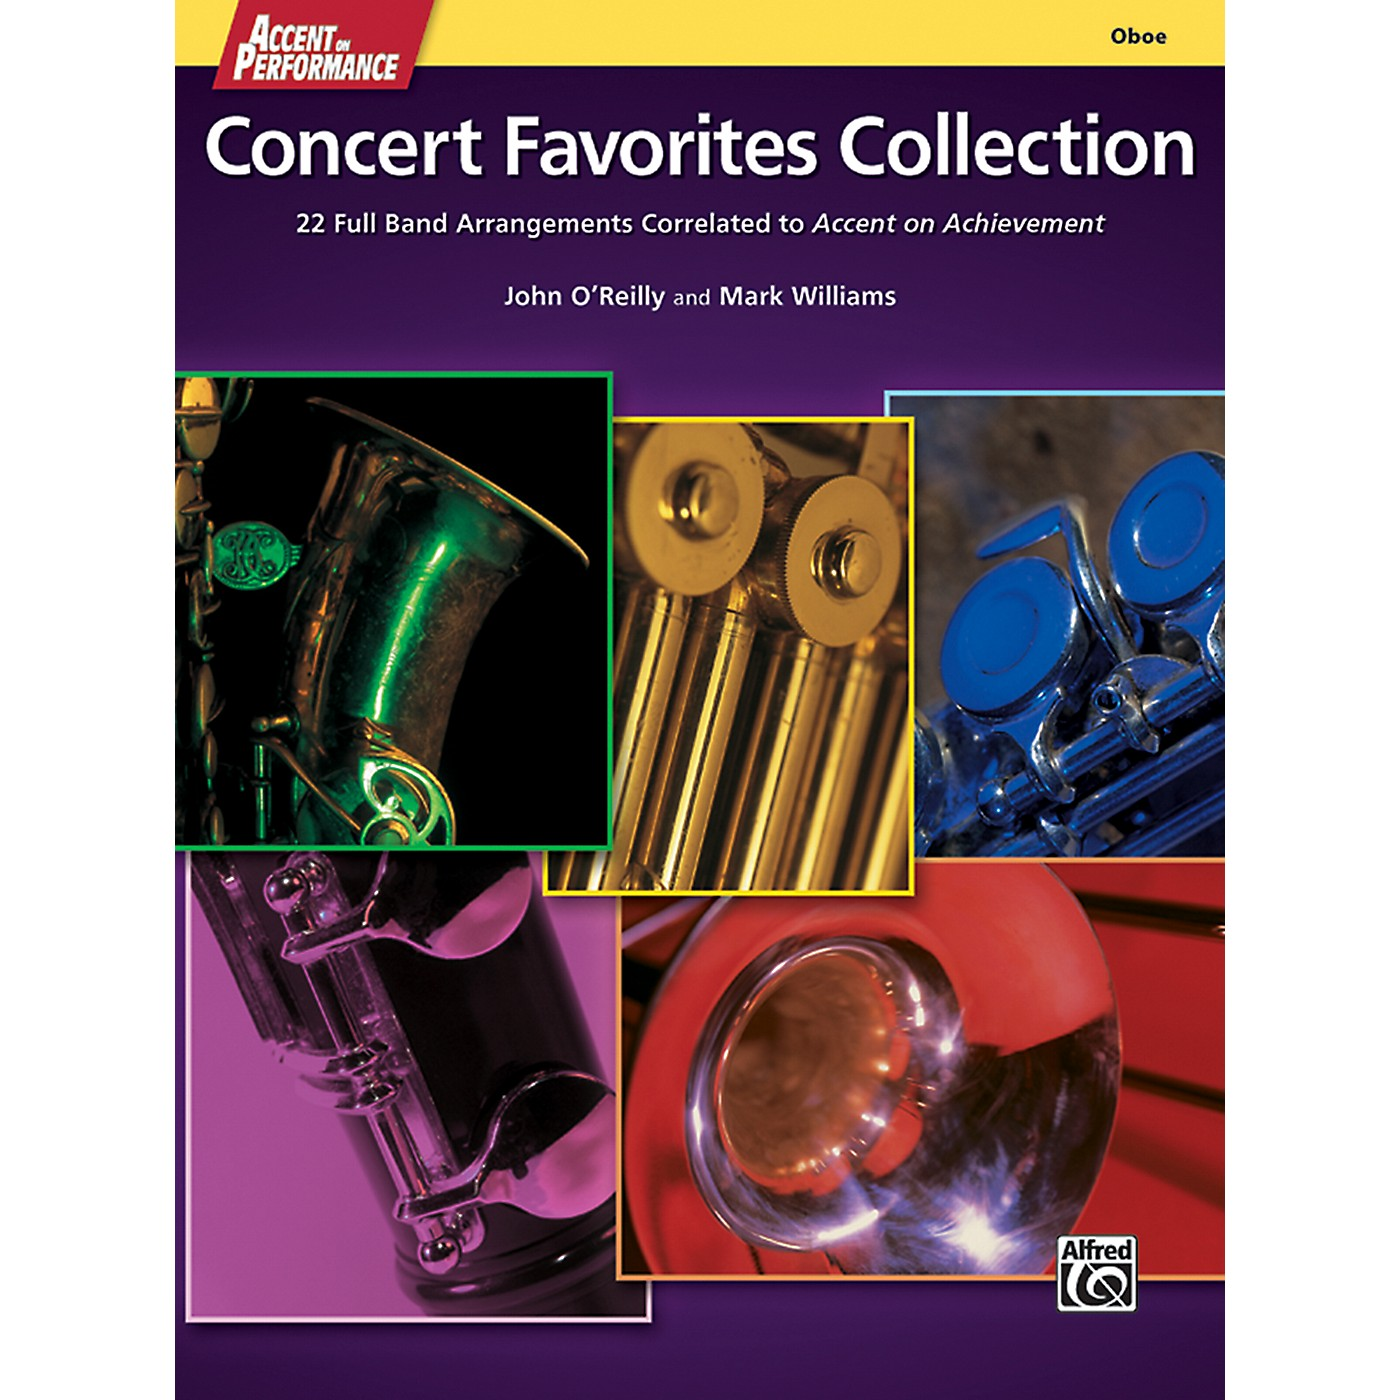 Alfred Accent on Performance Concert Favorites Collection Oboe Book thumbnail